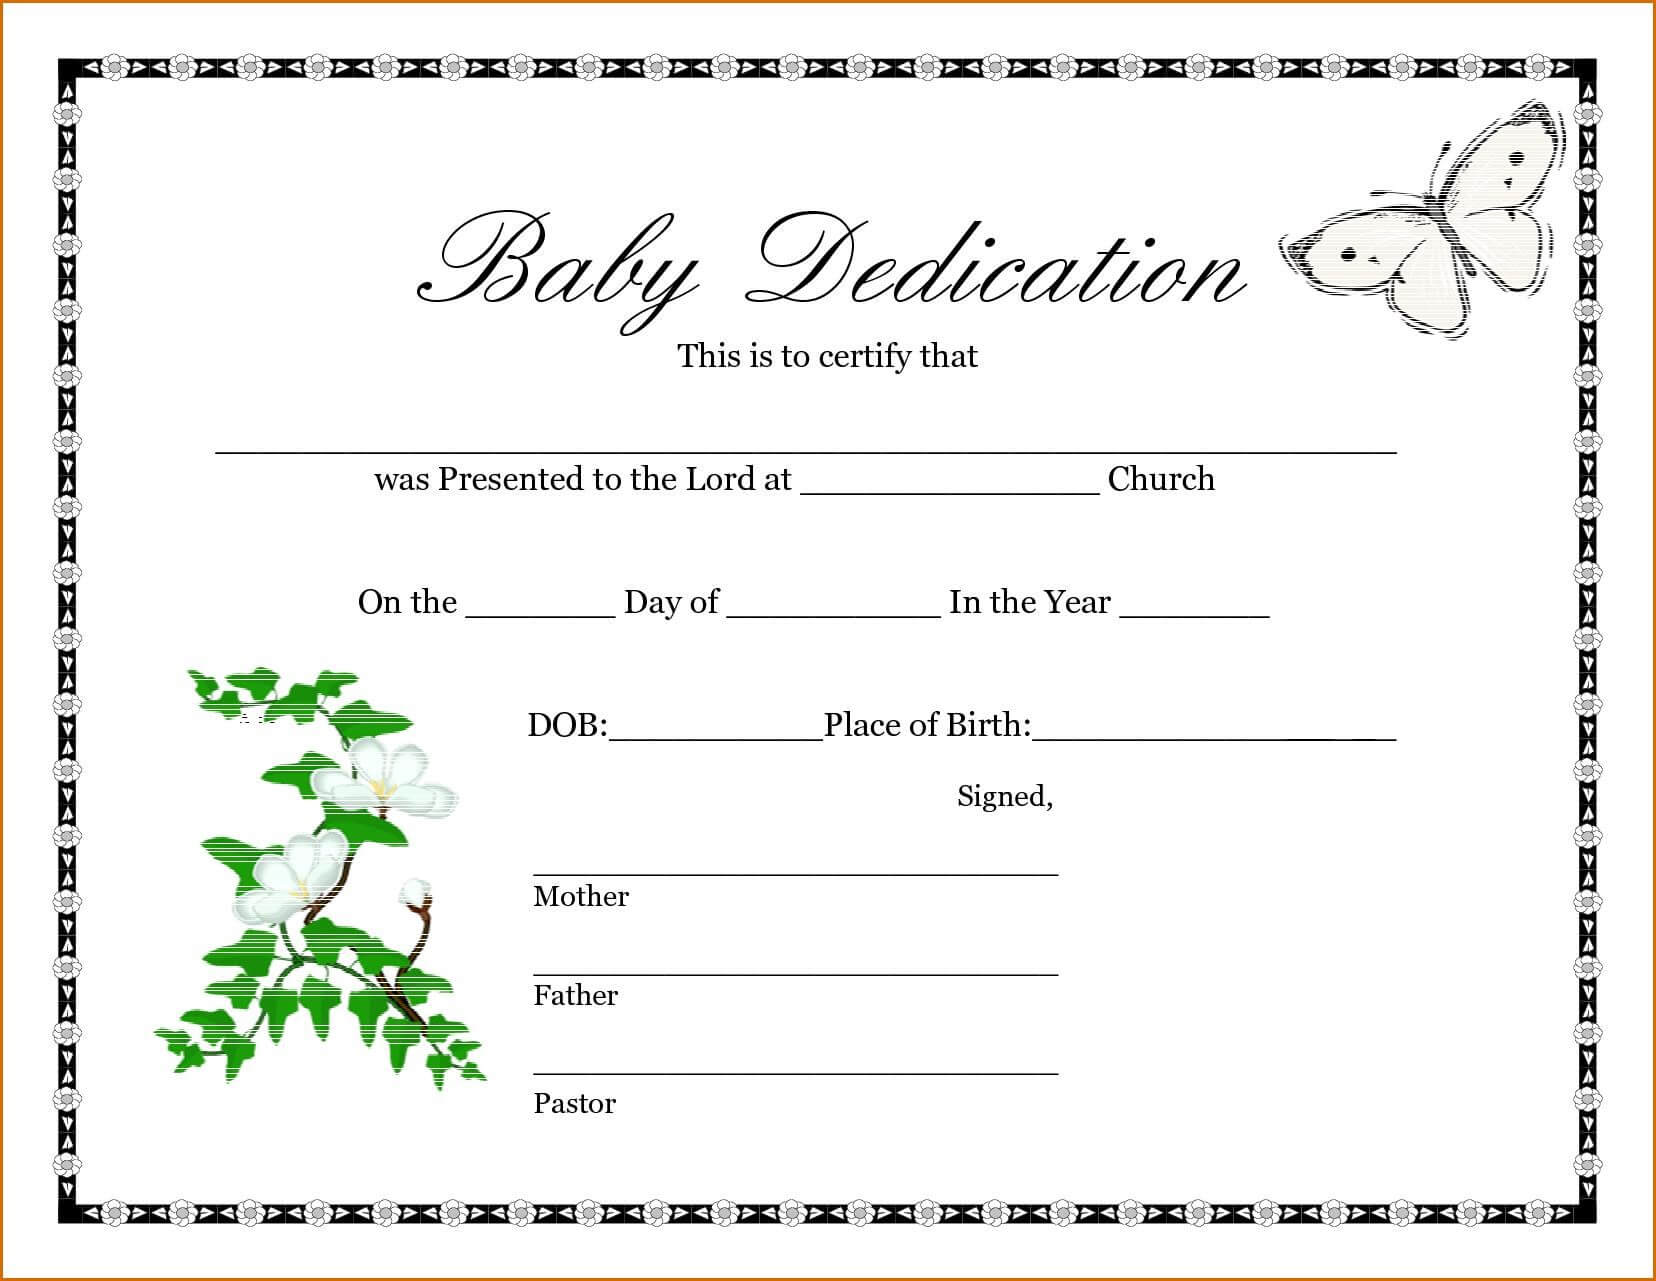 028 Baby Dedication Certificate Template Fake Birth Maker Pertaining To Birth Certificate Fake Template